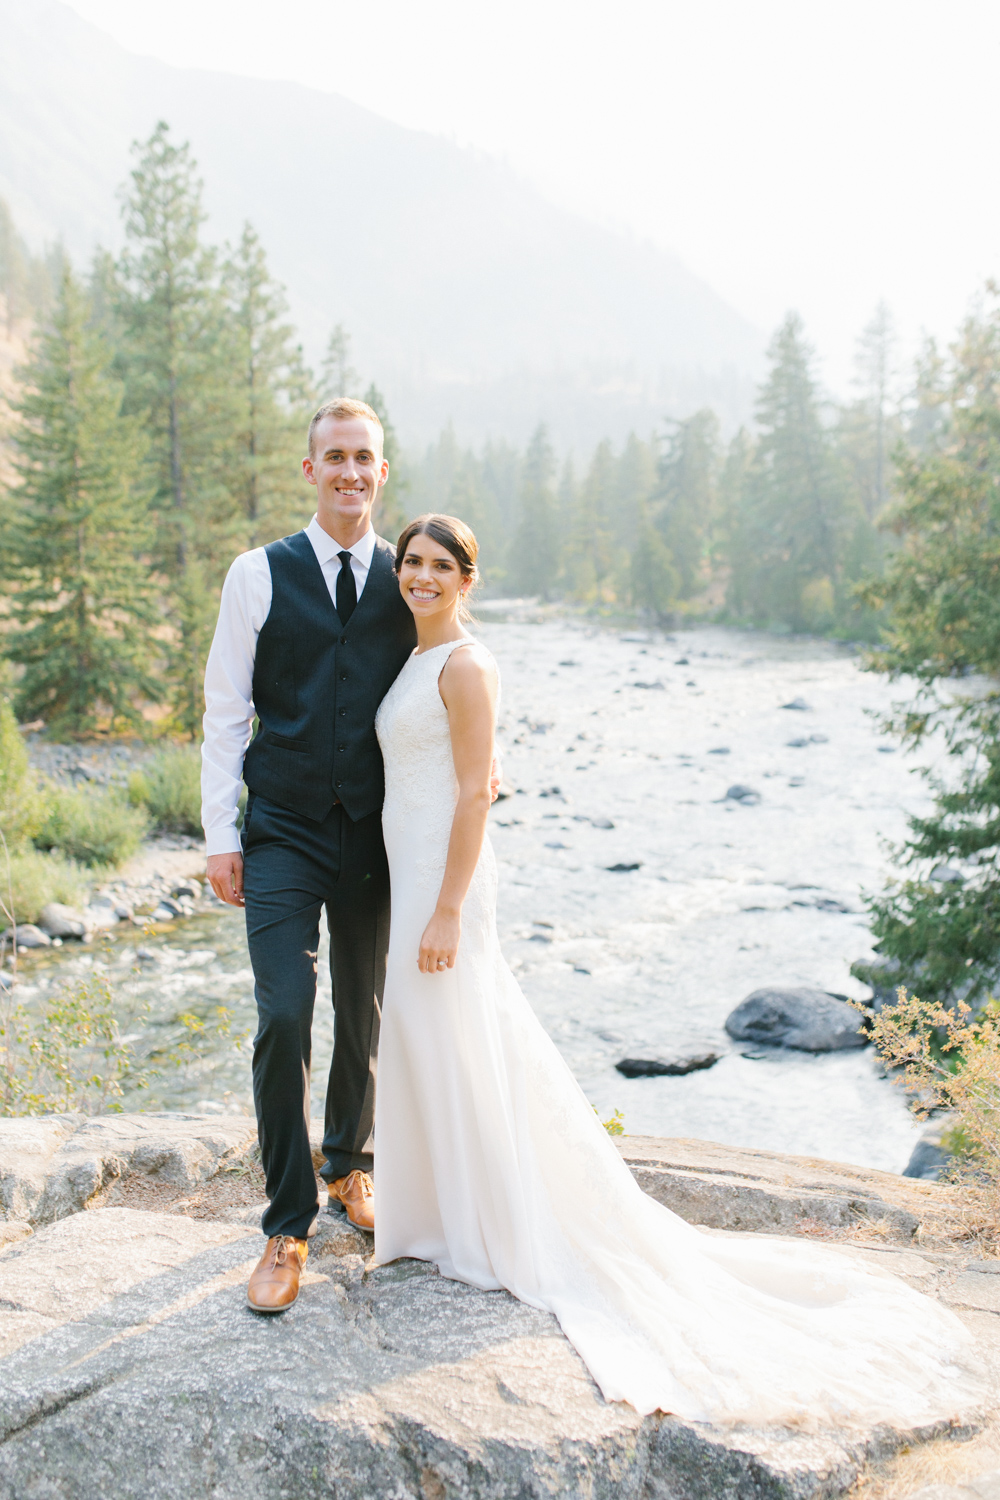 Grey and White Wedding in the Mountains of Leavenworth, Washington | Sleeping Lady | Classic and Timeless Wedding | VSCO | Stunning Mountain Top Bride and Groom Portraits on the Icicle River.jpg-3301.jpg